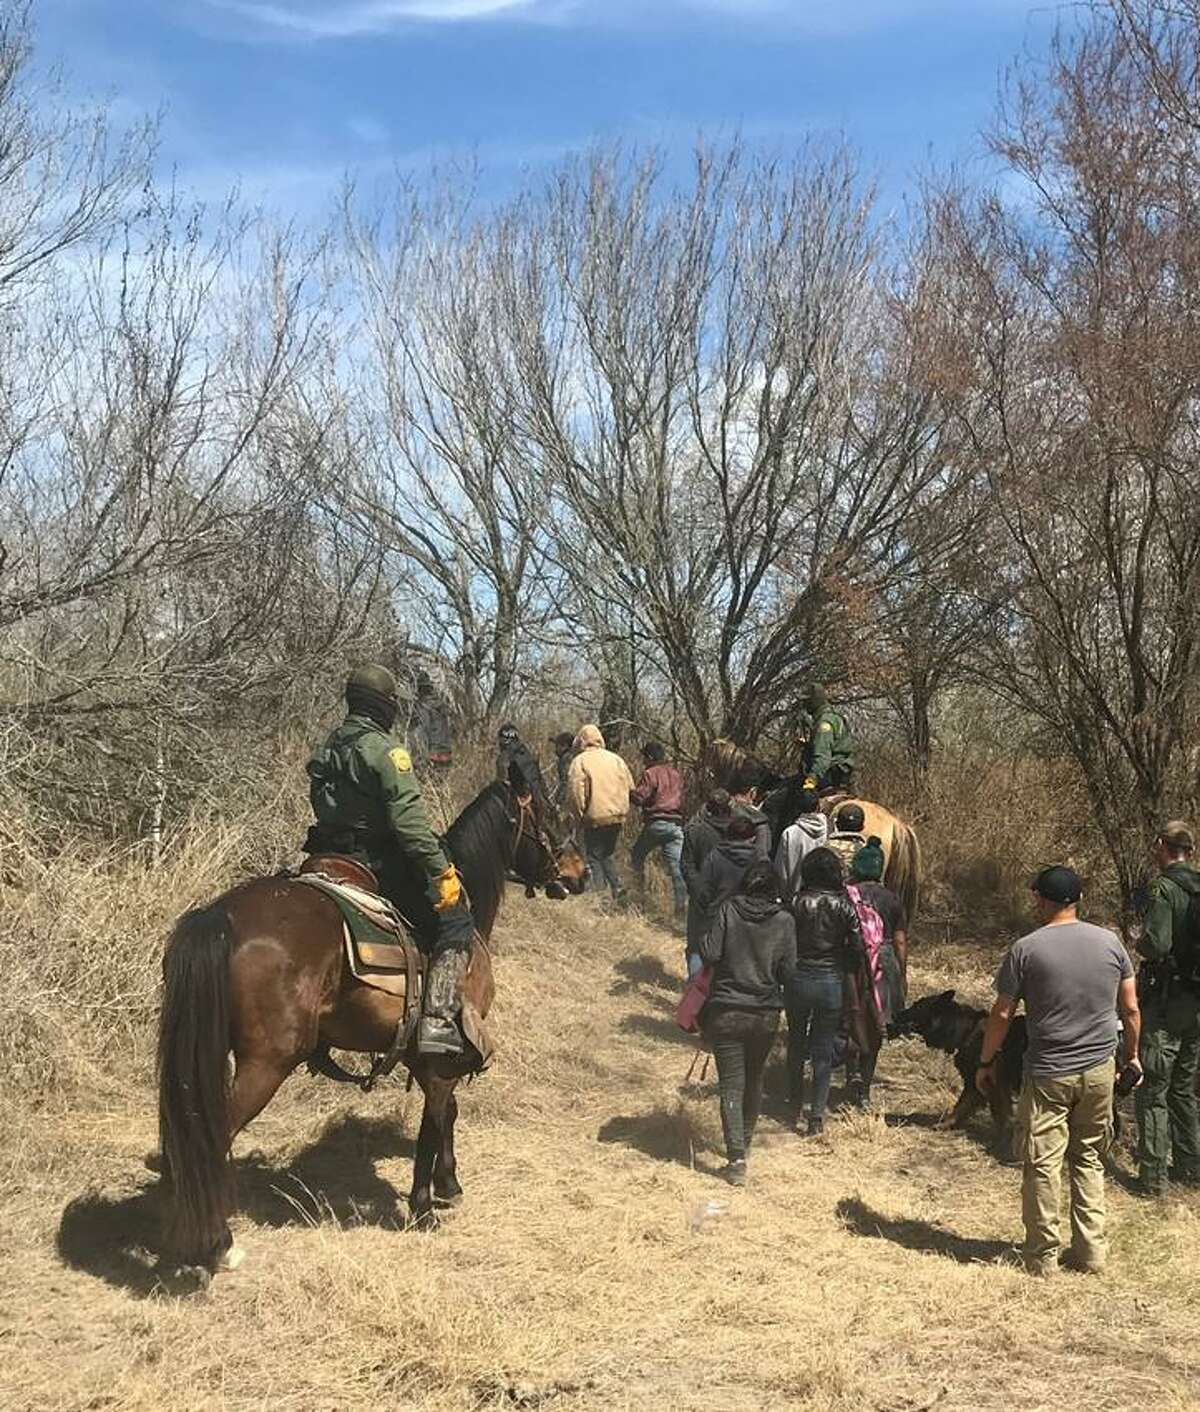 Laredo Sector Horse Patrol unit detained 125 people accused of crossing the border illegally.